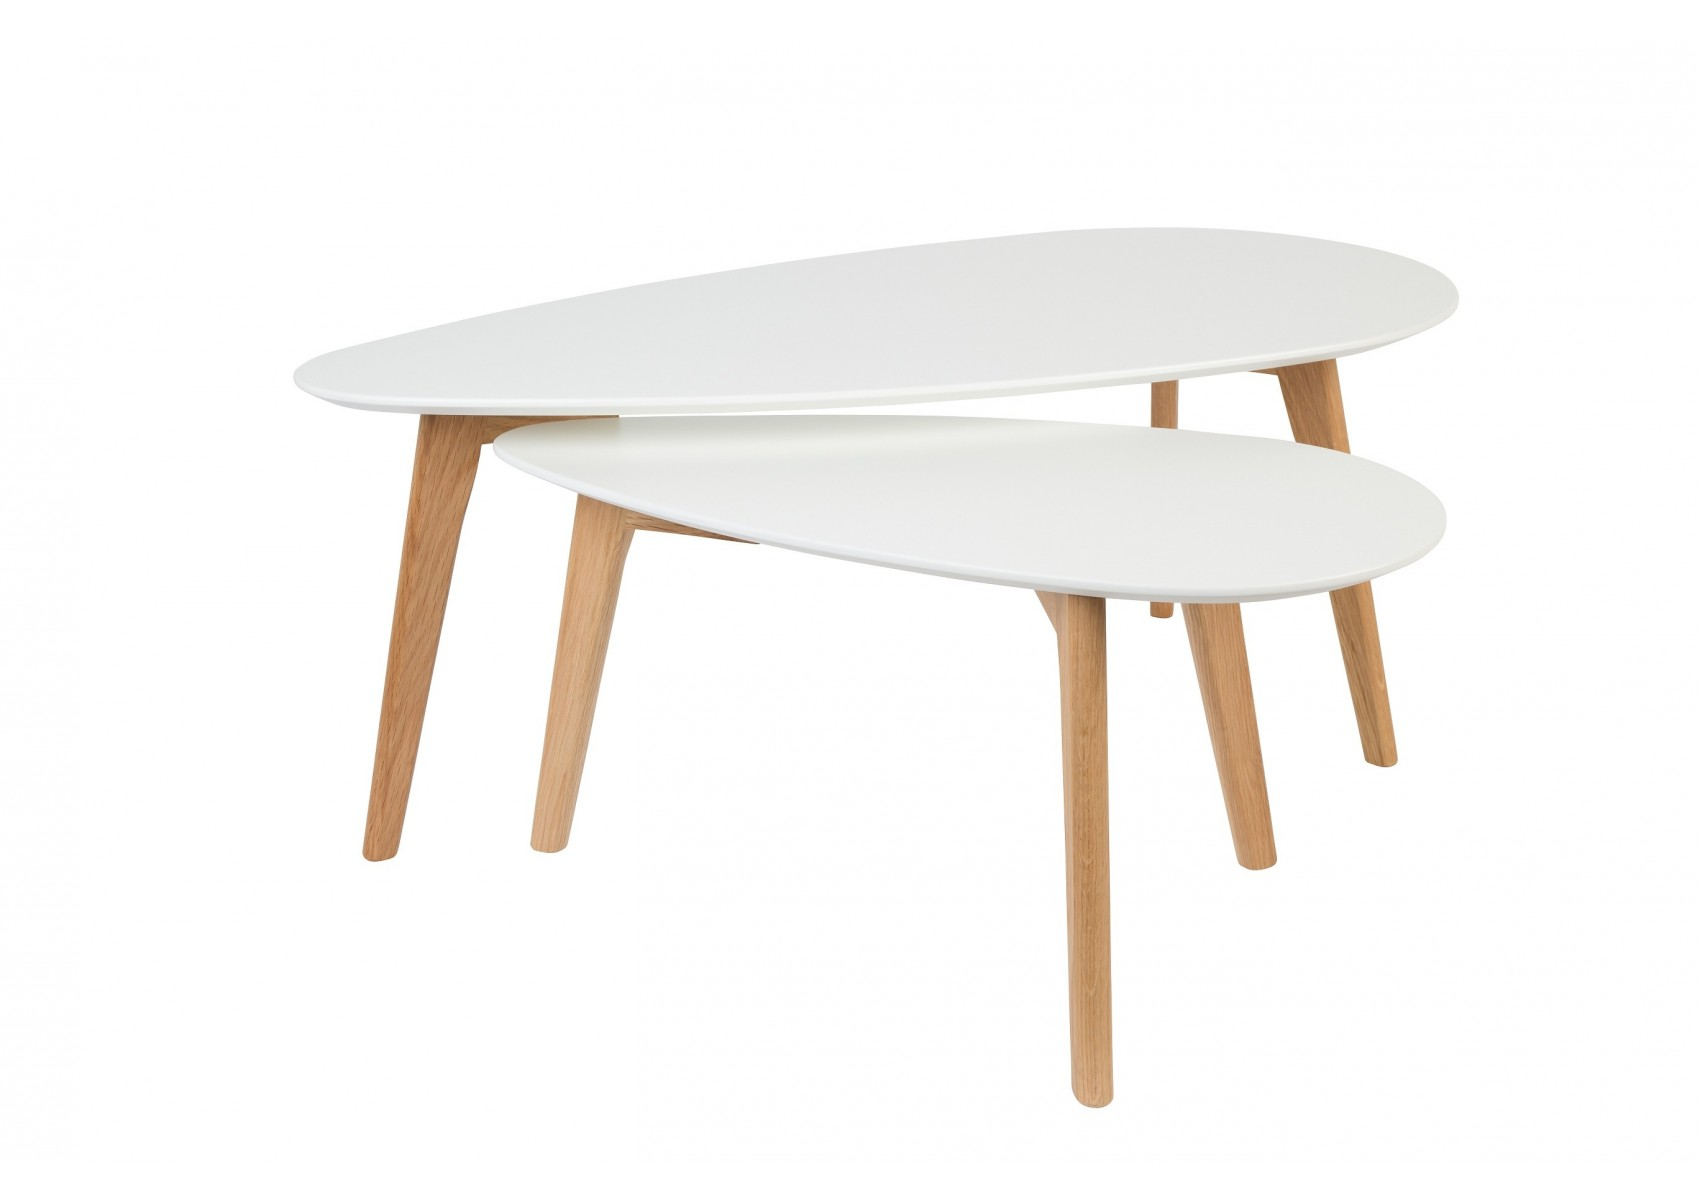 Tables Basse Scandinave Drop Laqu E Blanche # Table Basse Scandinave Laque